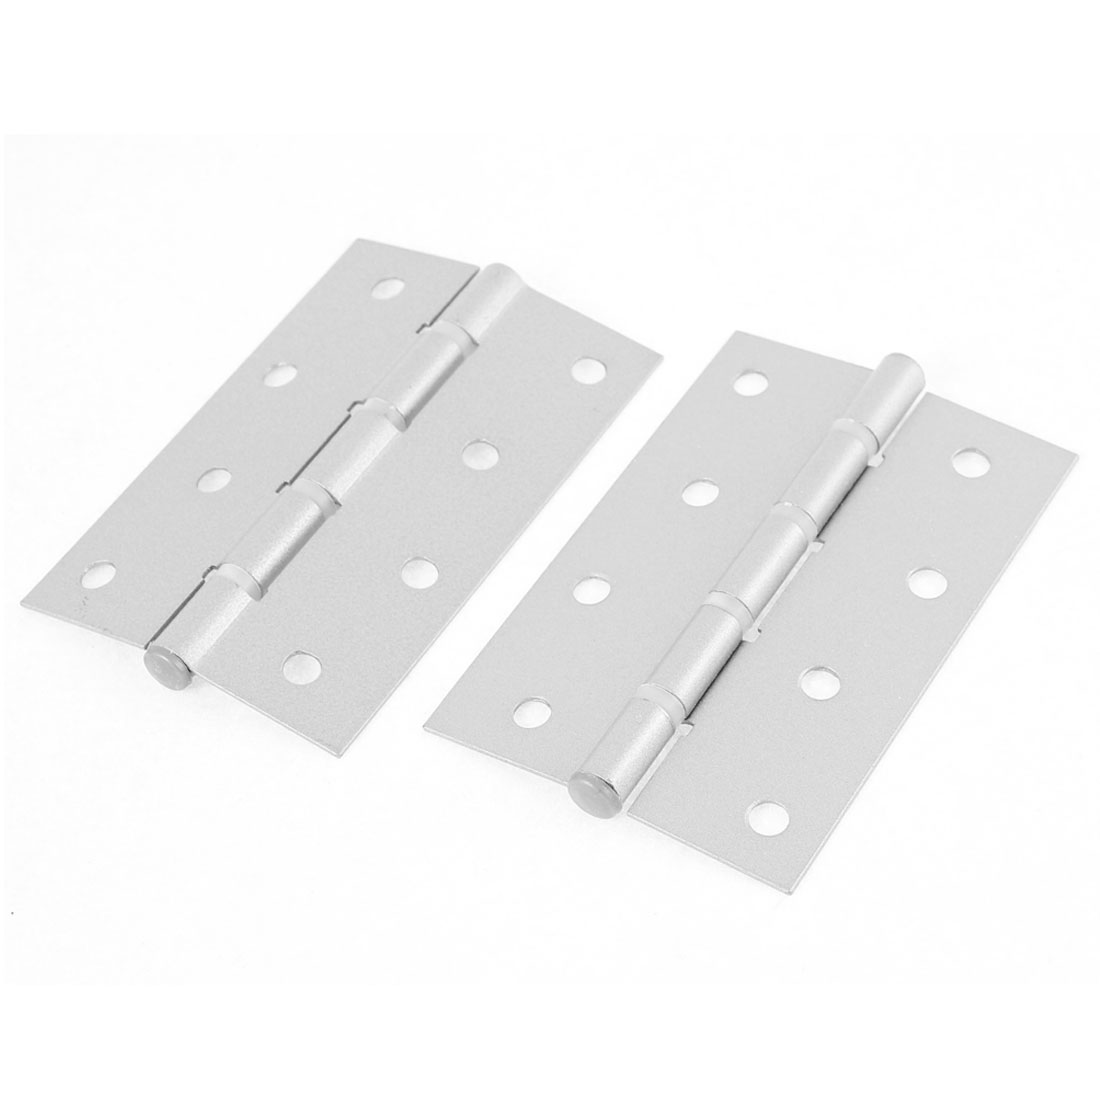 100mm x 65mm Metal Ball Bearing Hinges Silver Tone 2pcs for Door Window